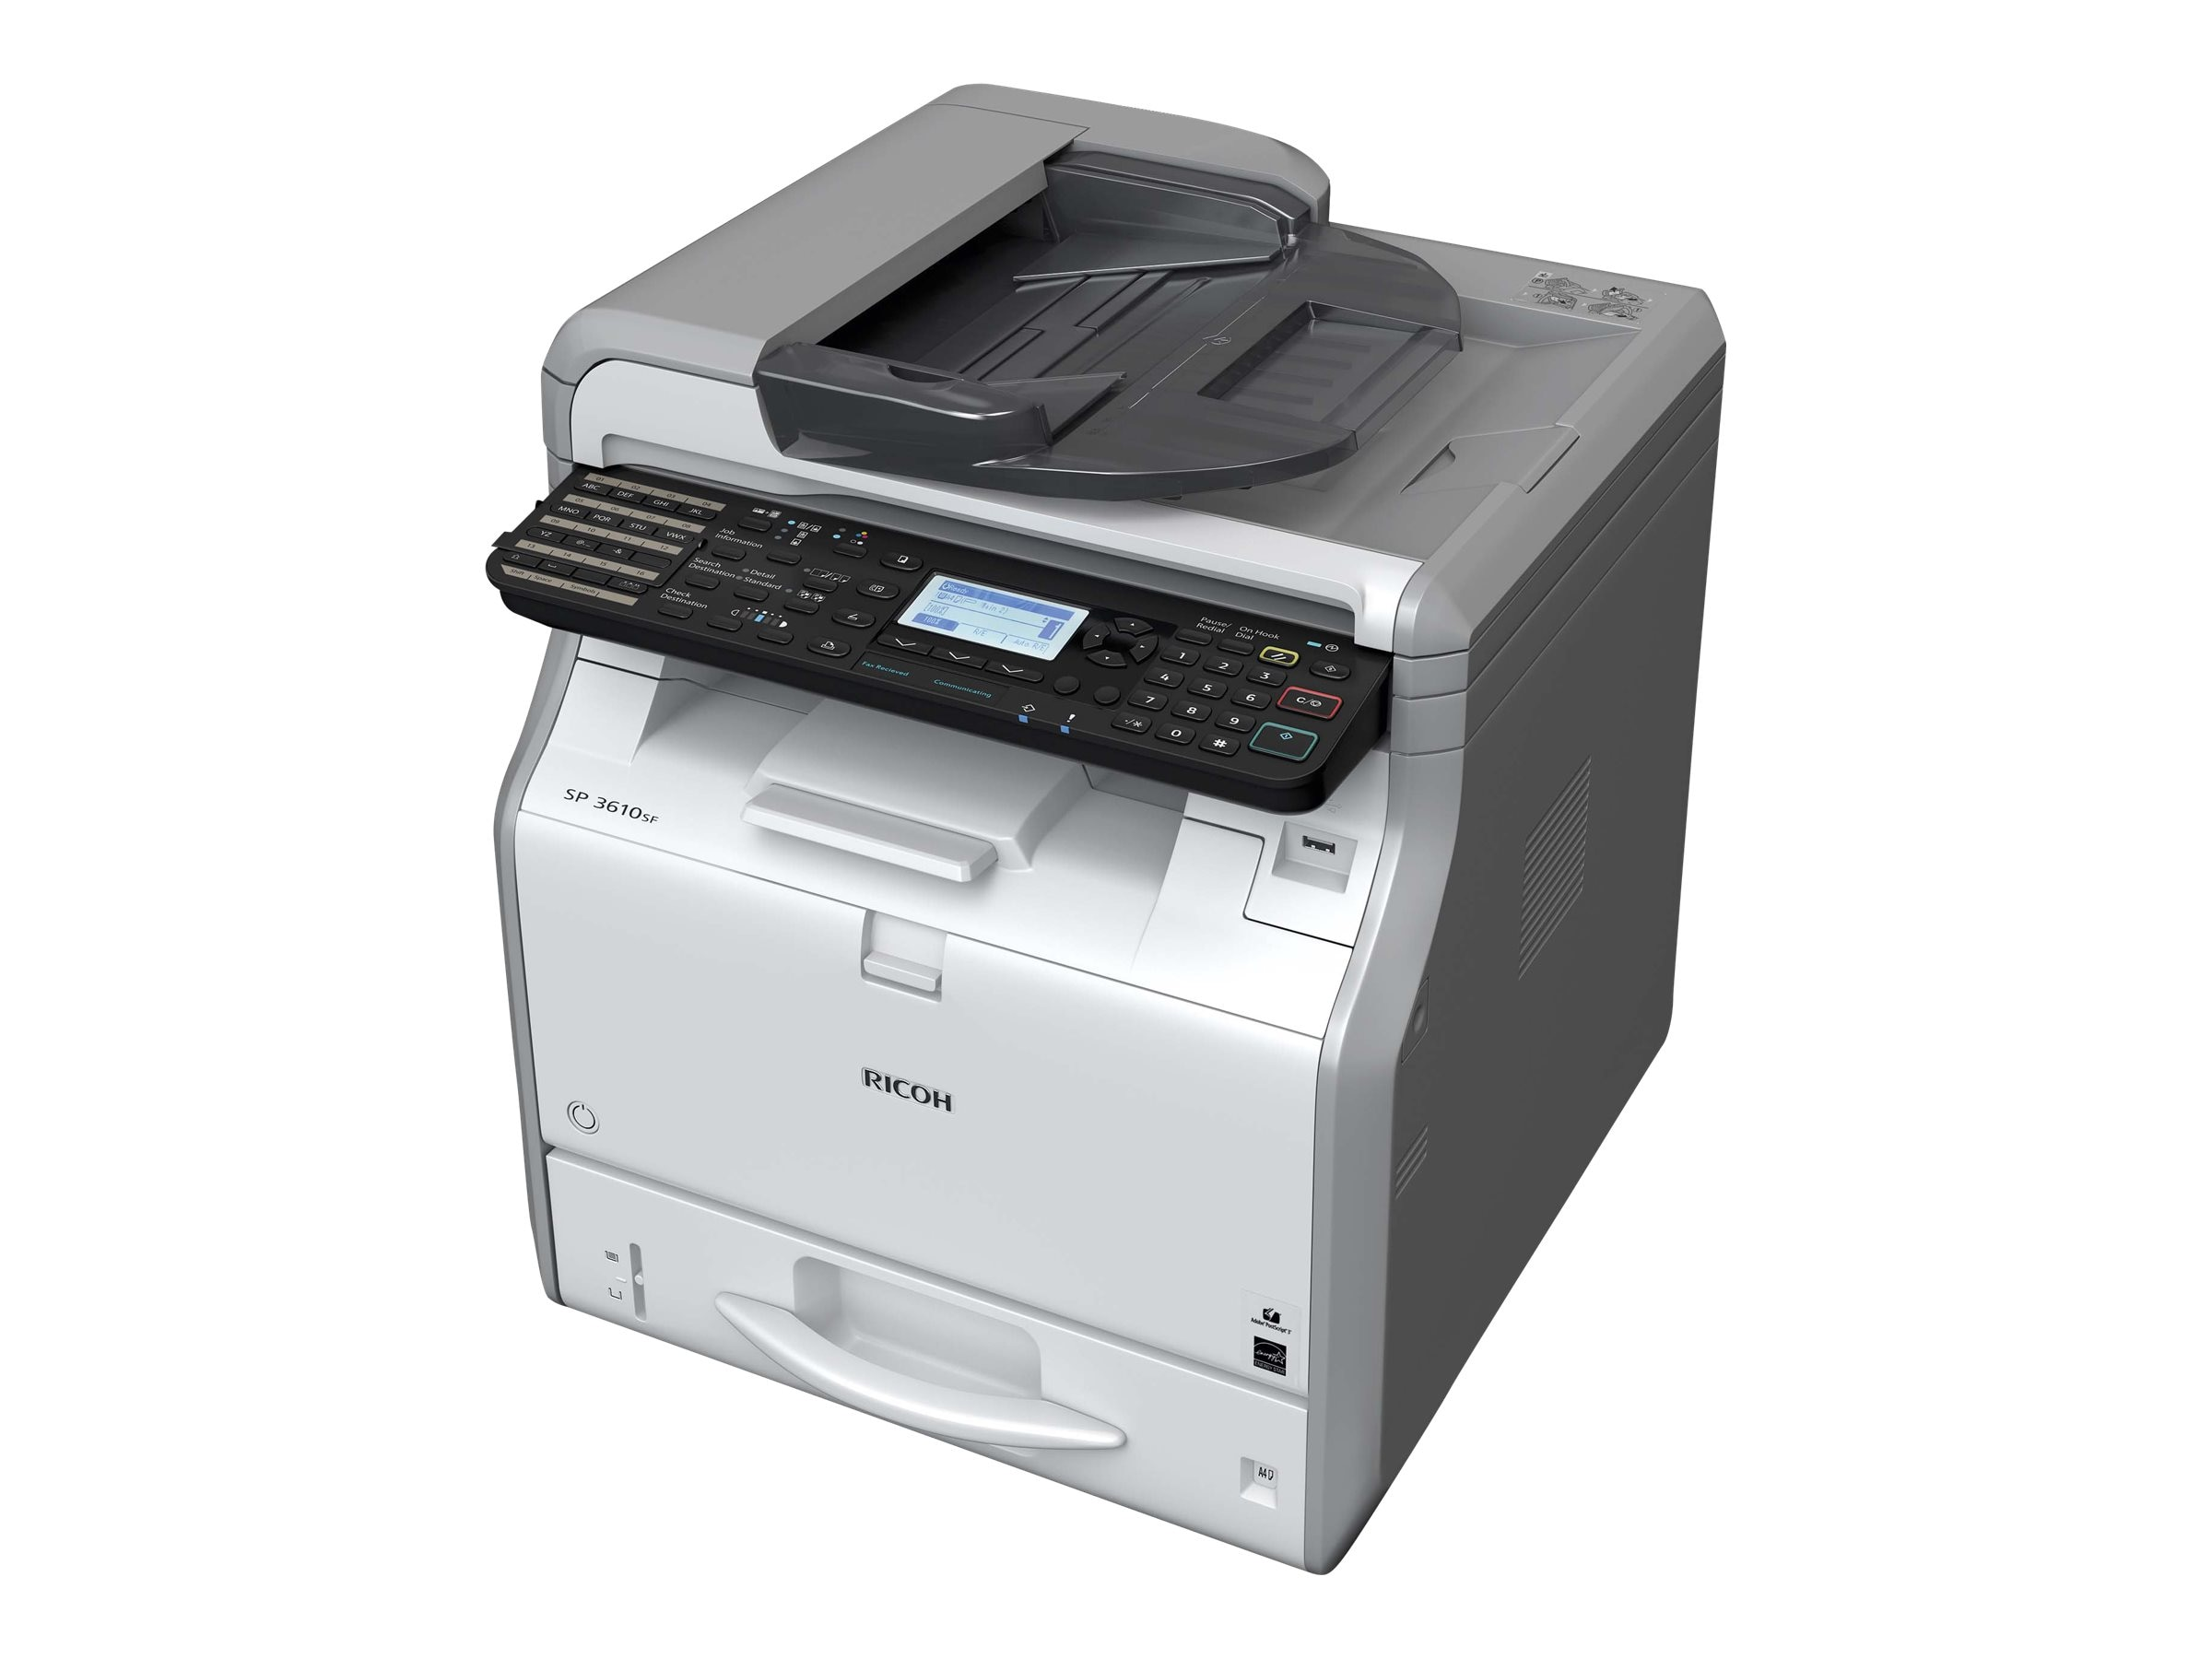 Ricoh SP 3610SF Black & White Multifunction Printer